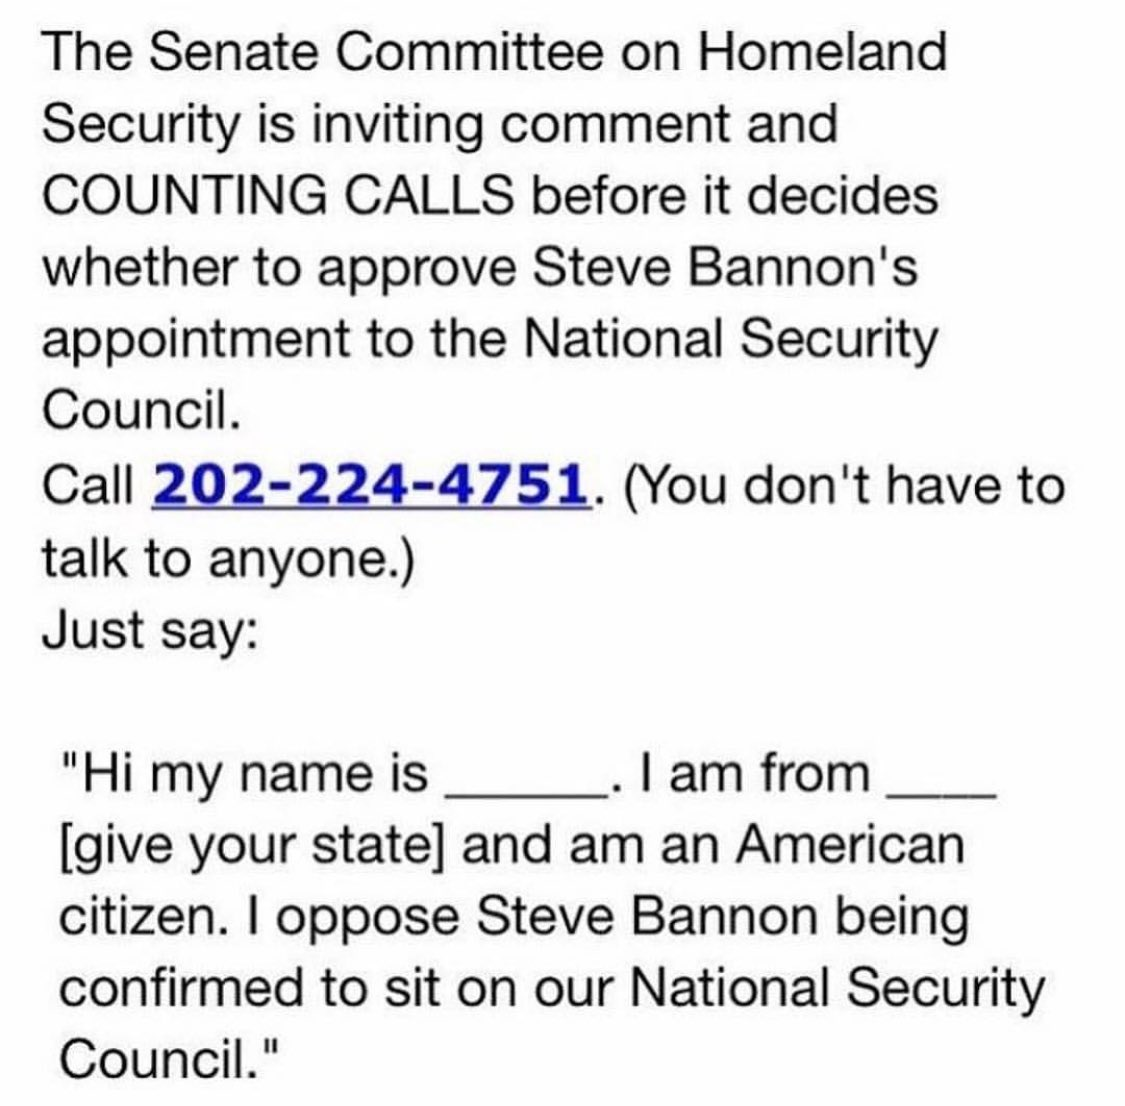 Pick up the phone and let the Senate know where you stand. Make your v...